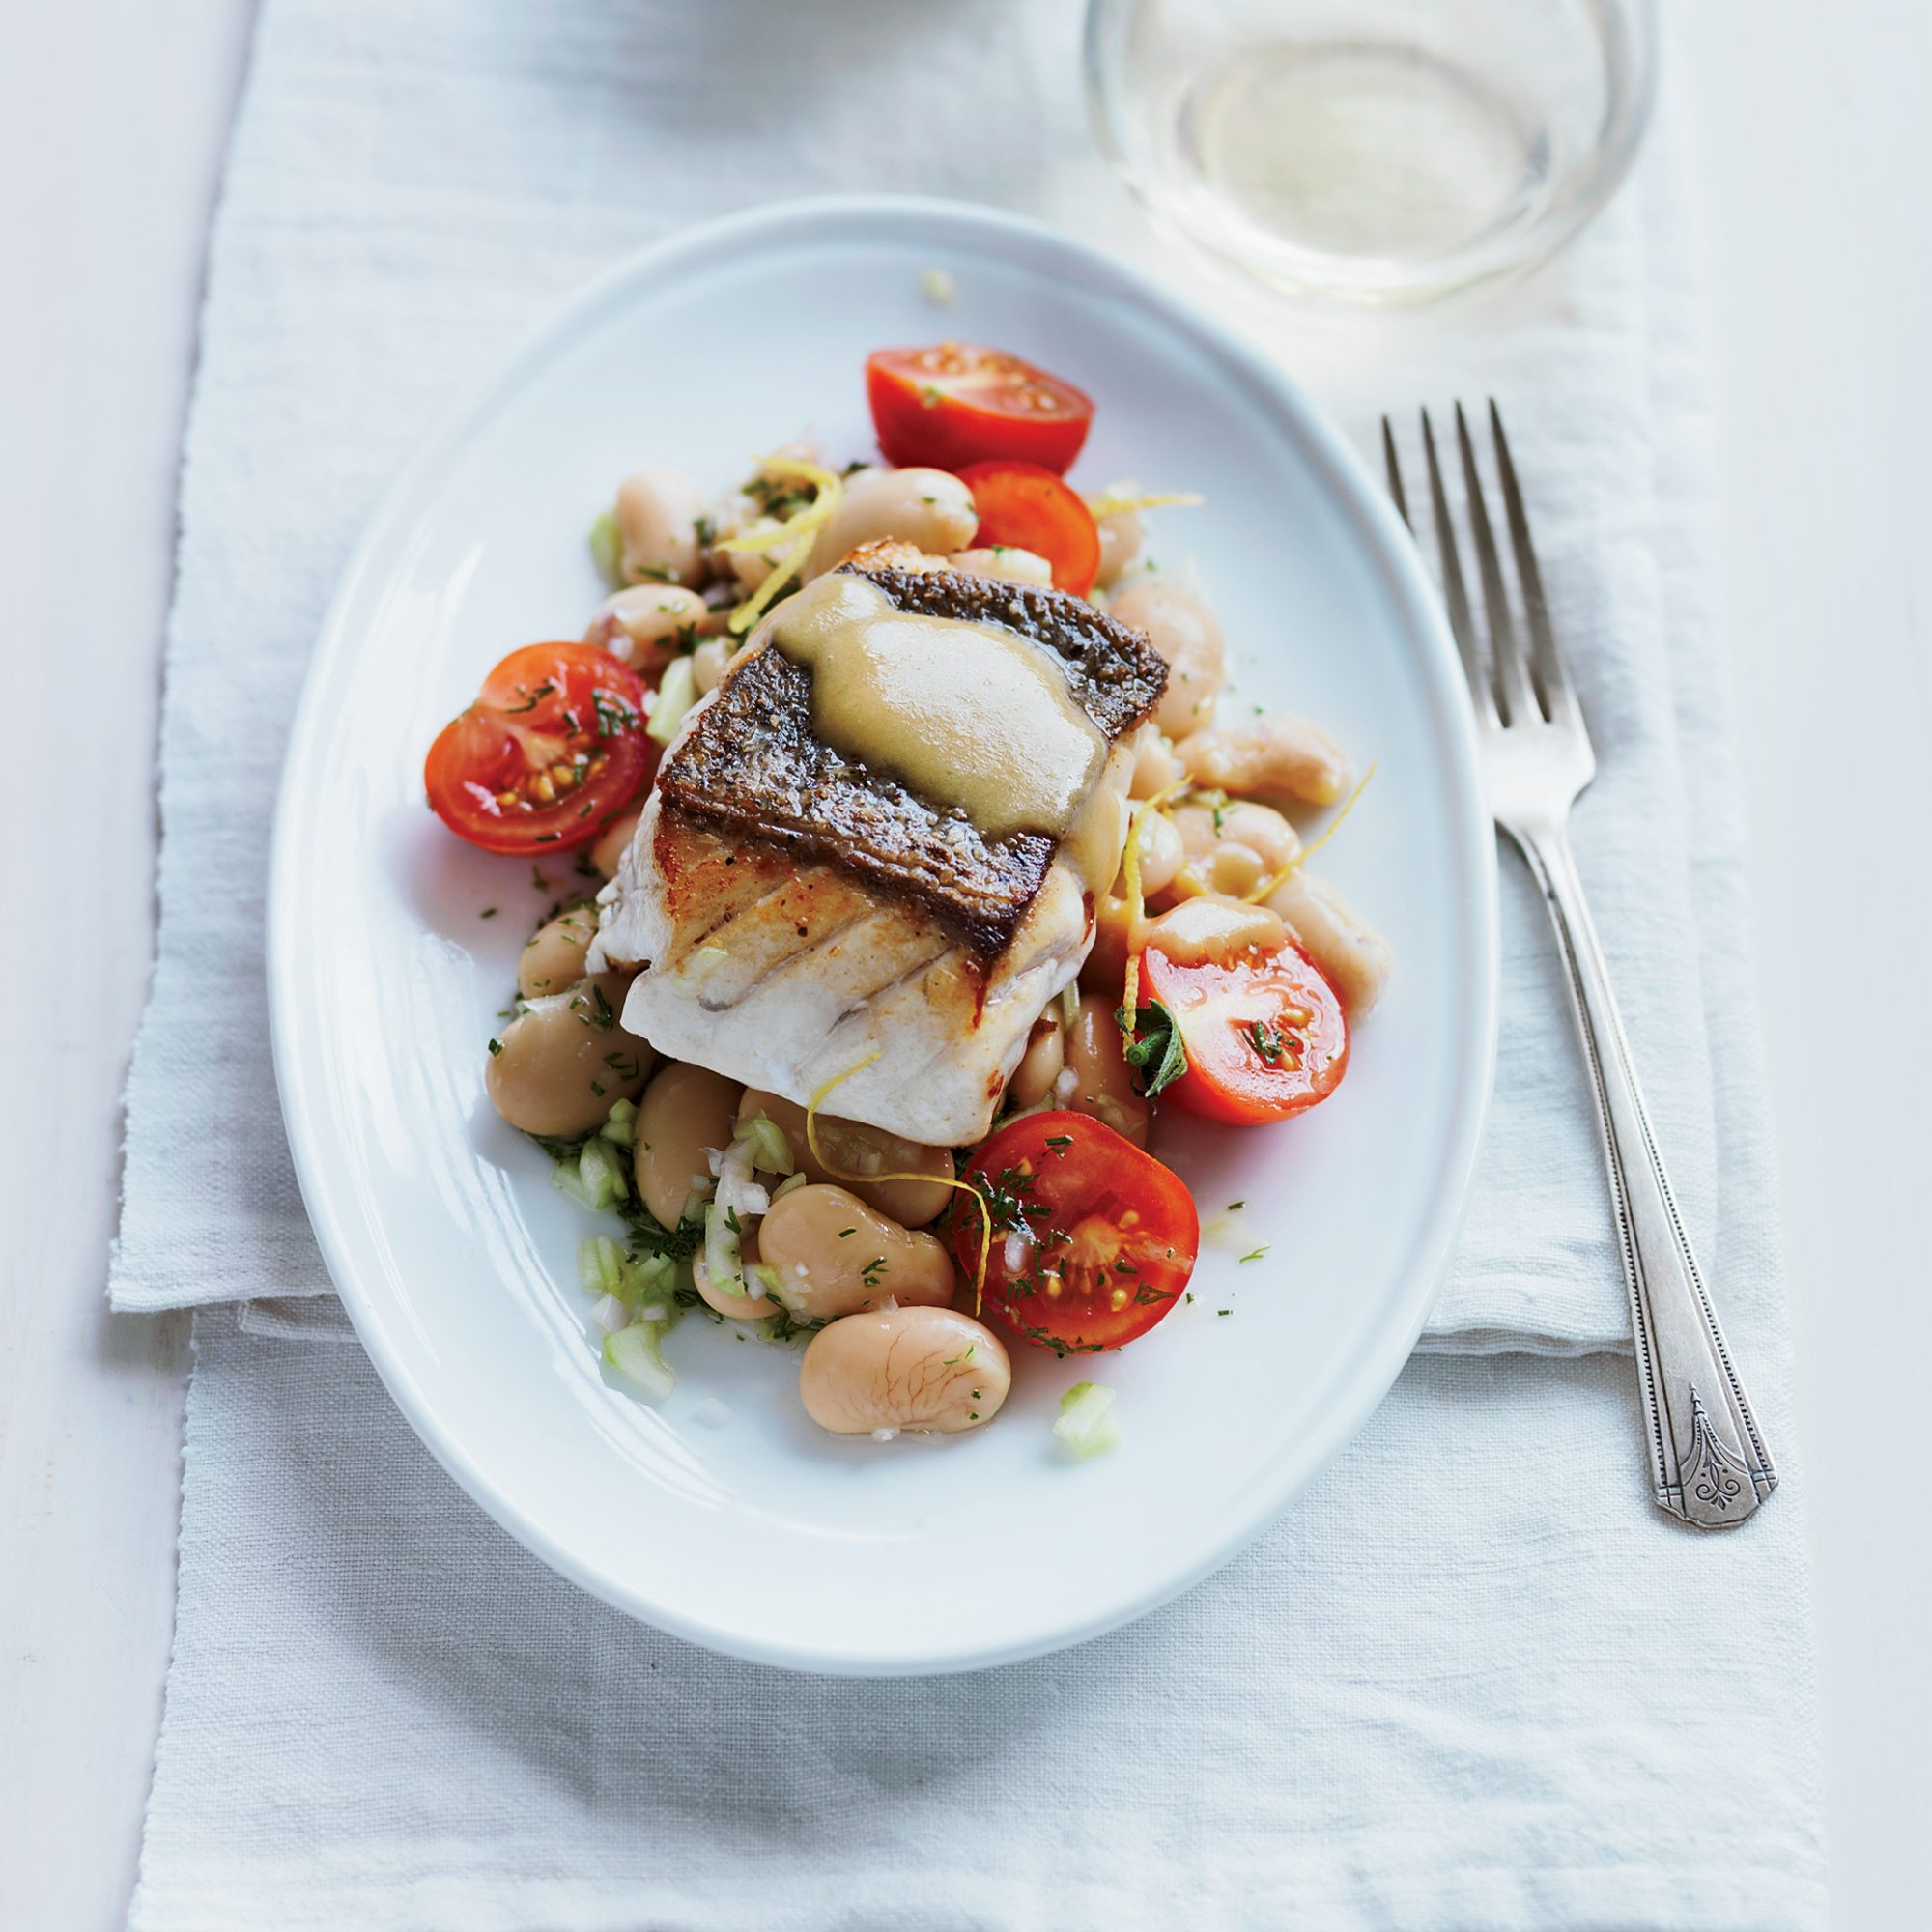 Pan-Roasted Grouper with Tomato & Butter Bean Salad